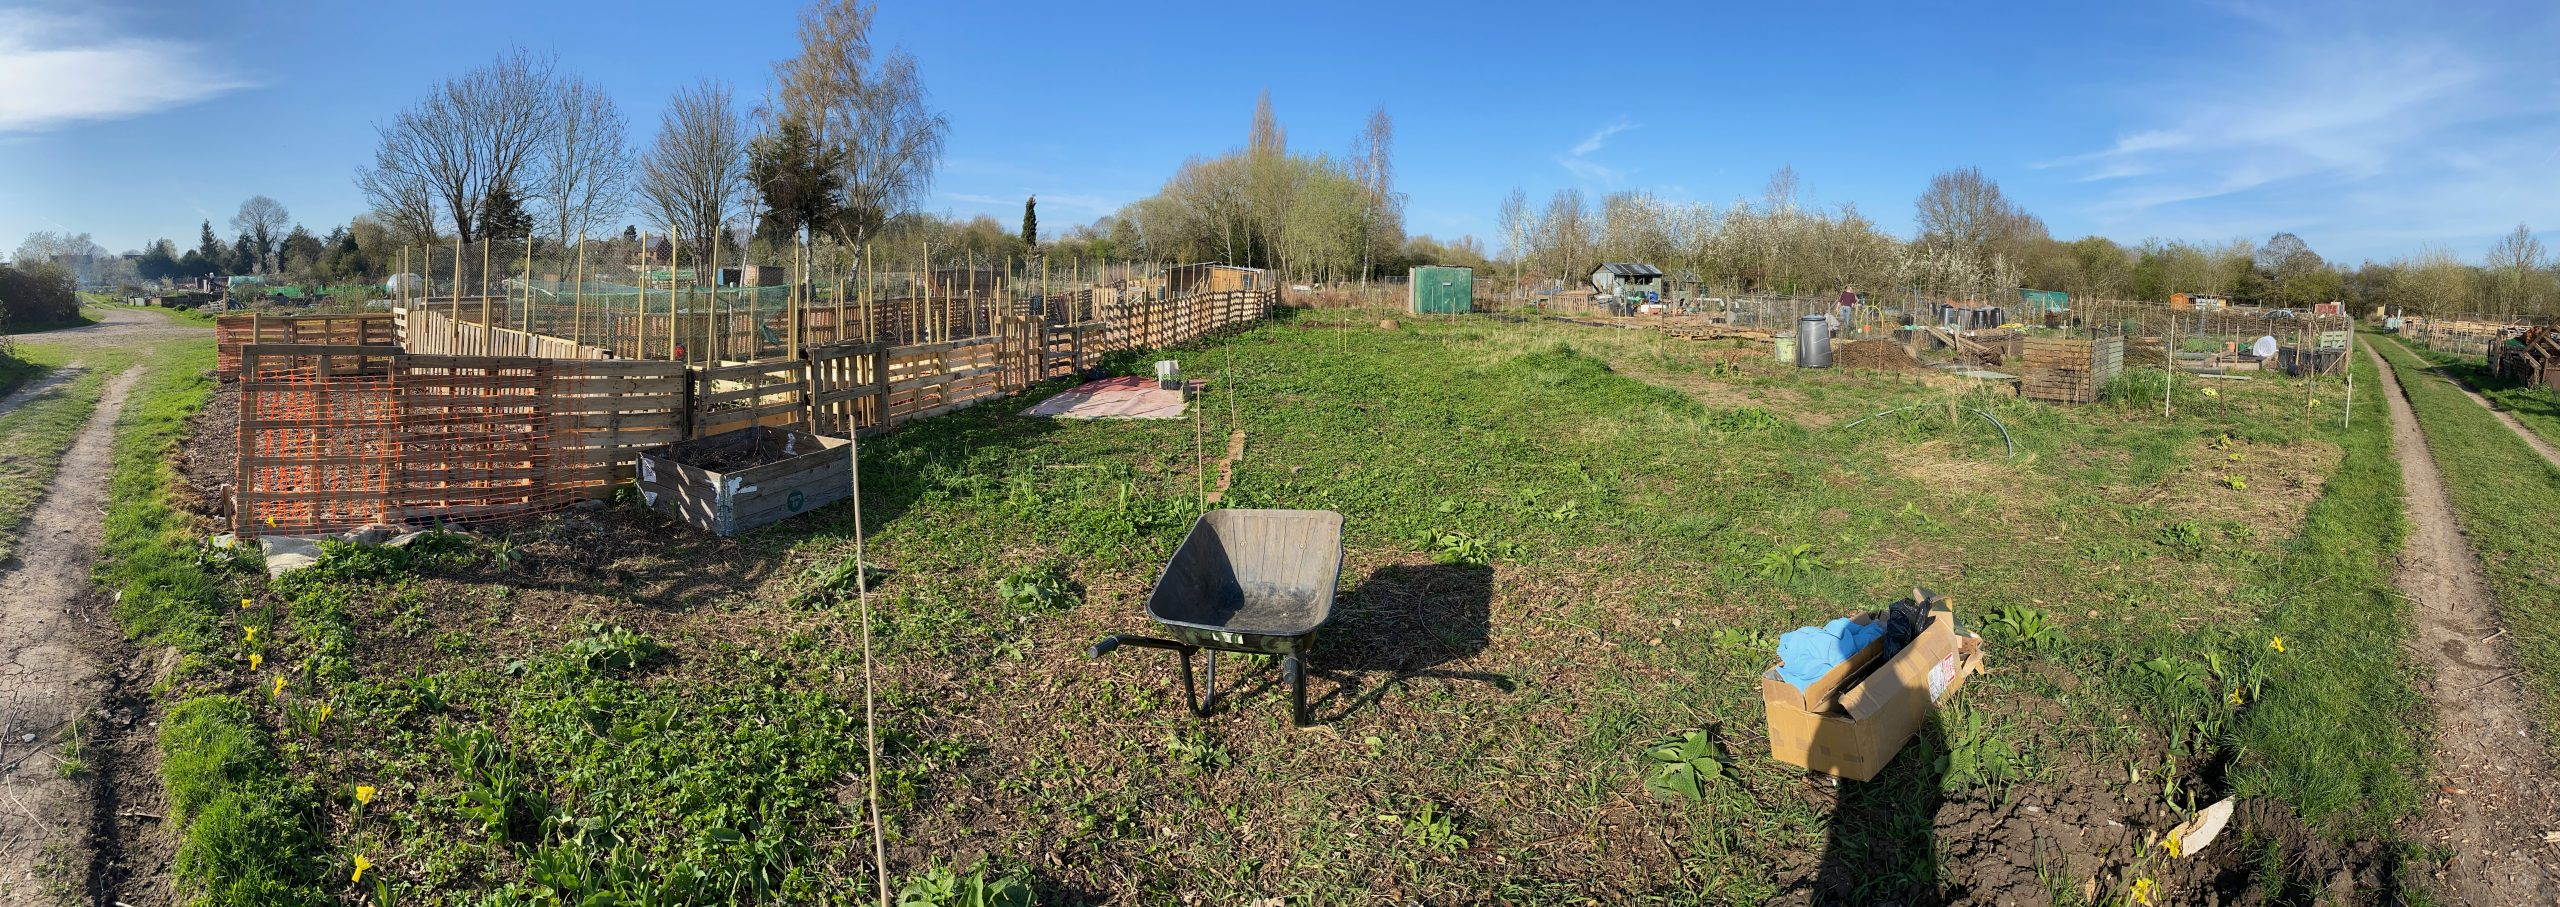 A panoramic view of the allotment in Old marston used by the GTC Allotment Club